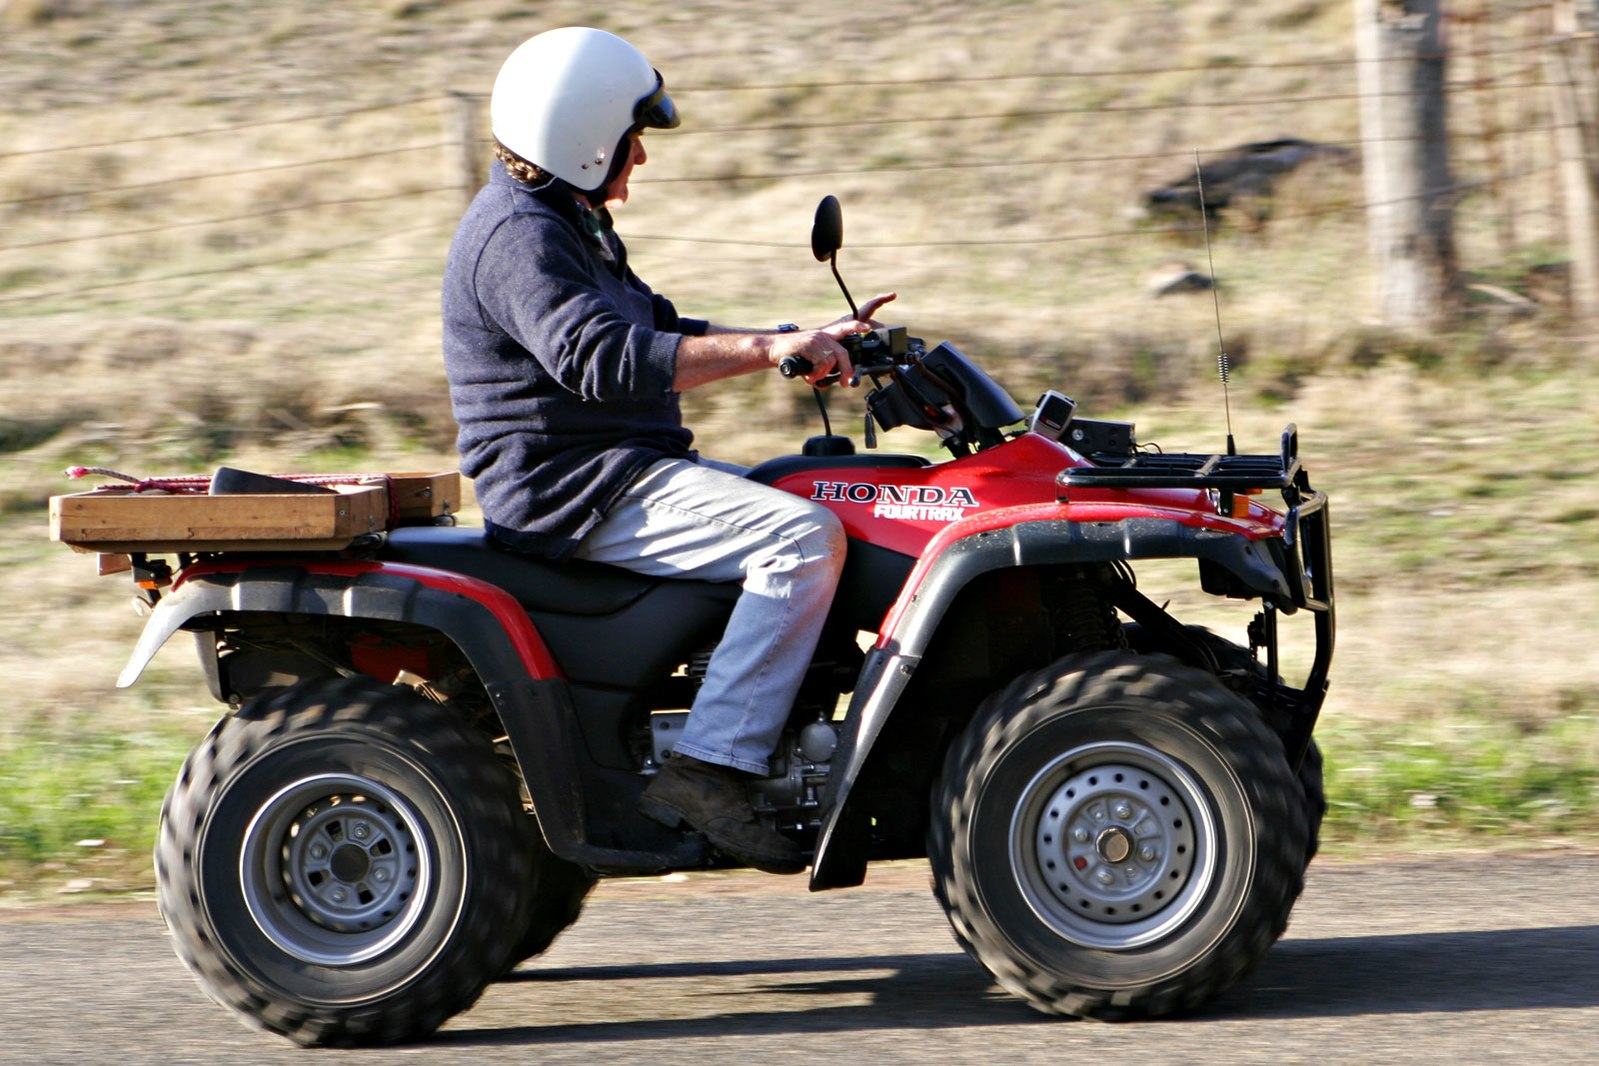 Quad bike - The complete information and online sale with